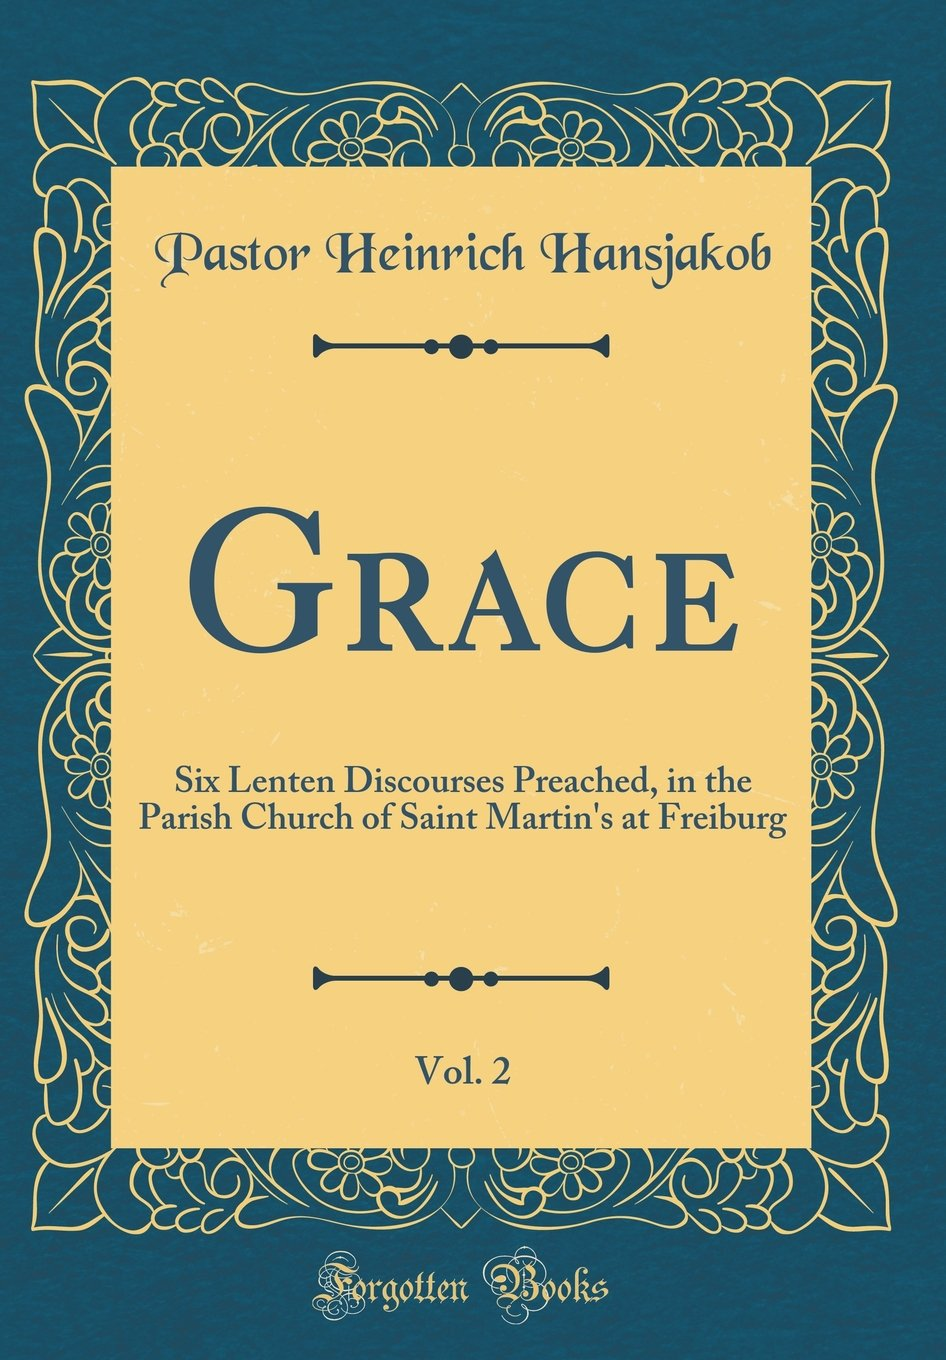 Grace, Vol. 2: Six Lenten Discourses Preached, in the Parish Church of Saint Martin's at Freiburg (Classic Reprint) Text fb2 ebook